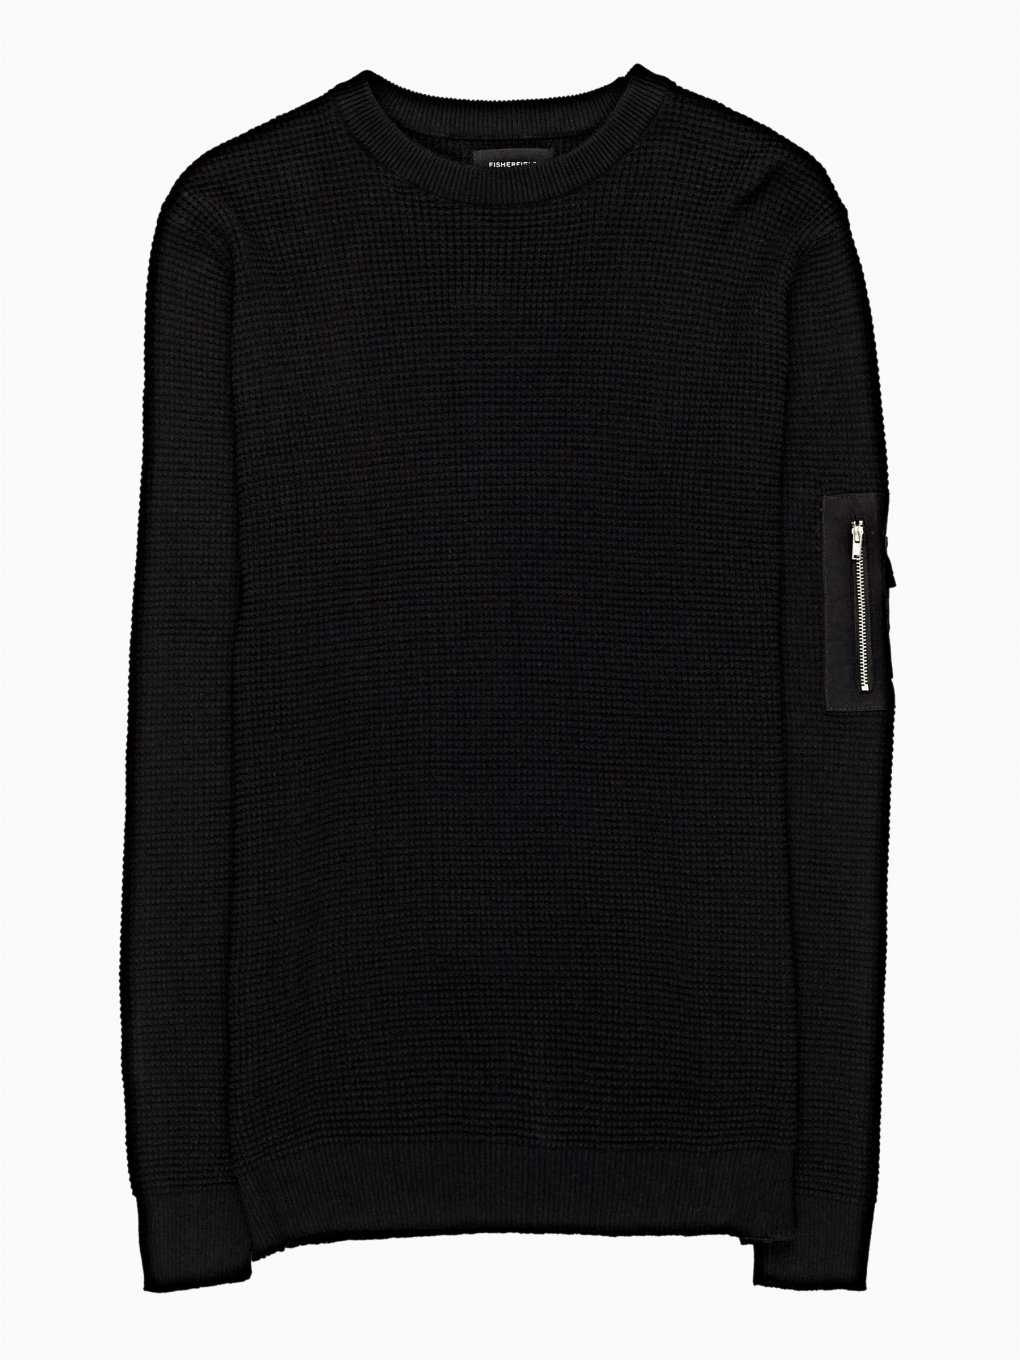 JUMPER WITH SLEEVE POCKET